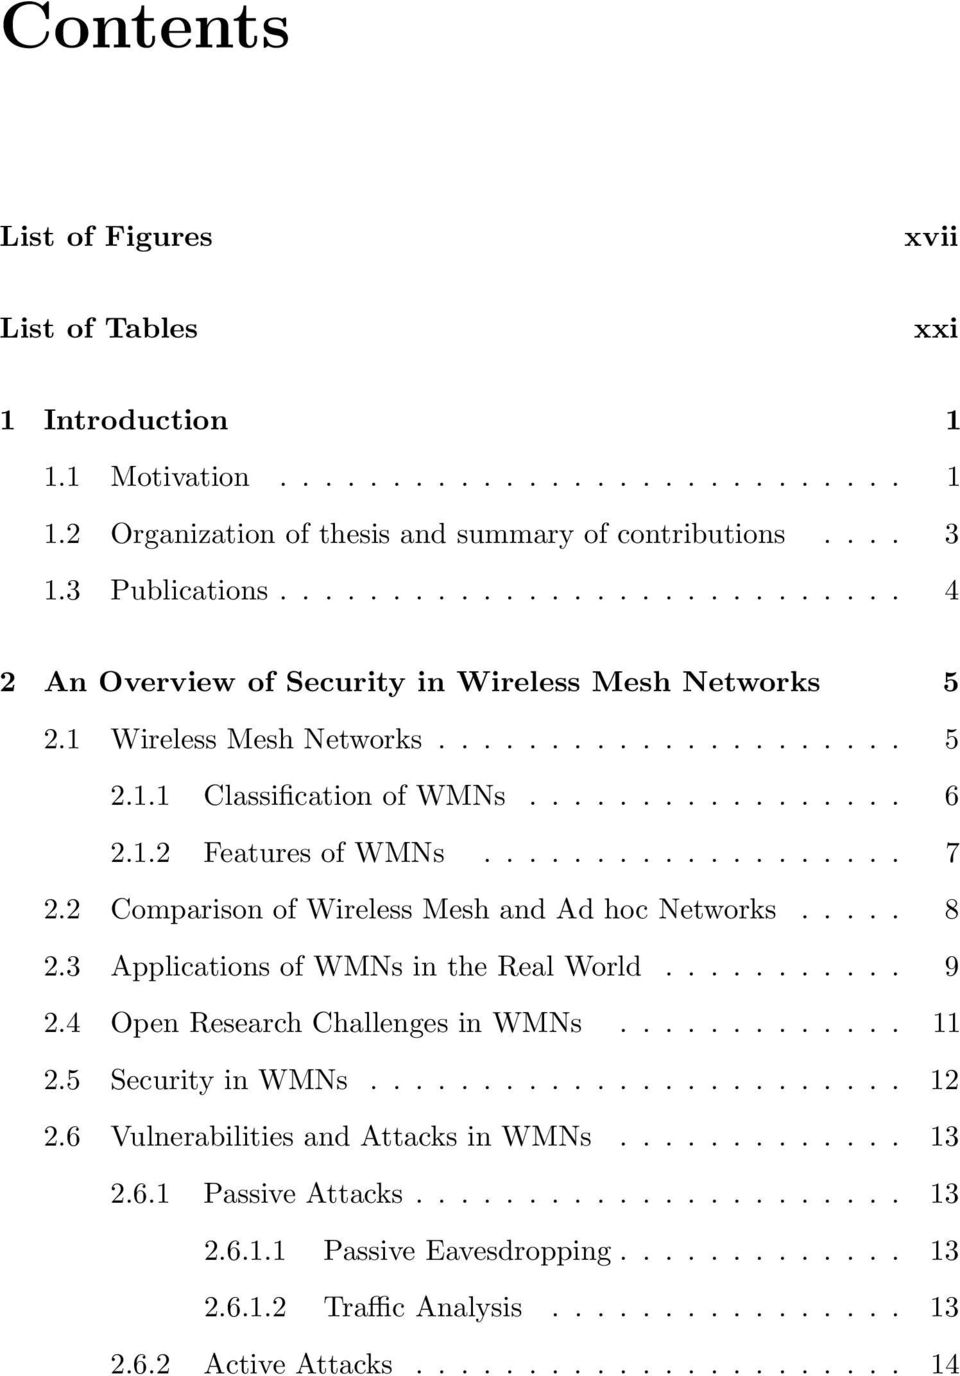 .................. 7 2.2 Comparison of Wireless Mesh and Ad hoc Networks..... 8 2.3 Applications of WMNs in the Real World........... 9 2.4 Open Research Challenges in WMNs............. 11 2.